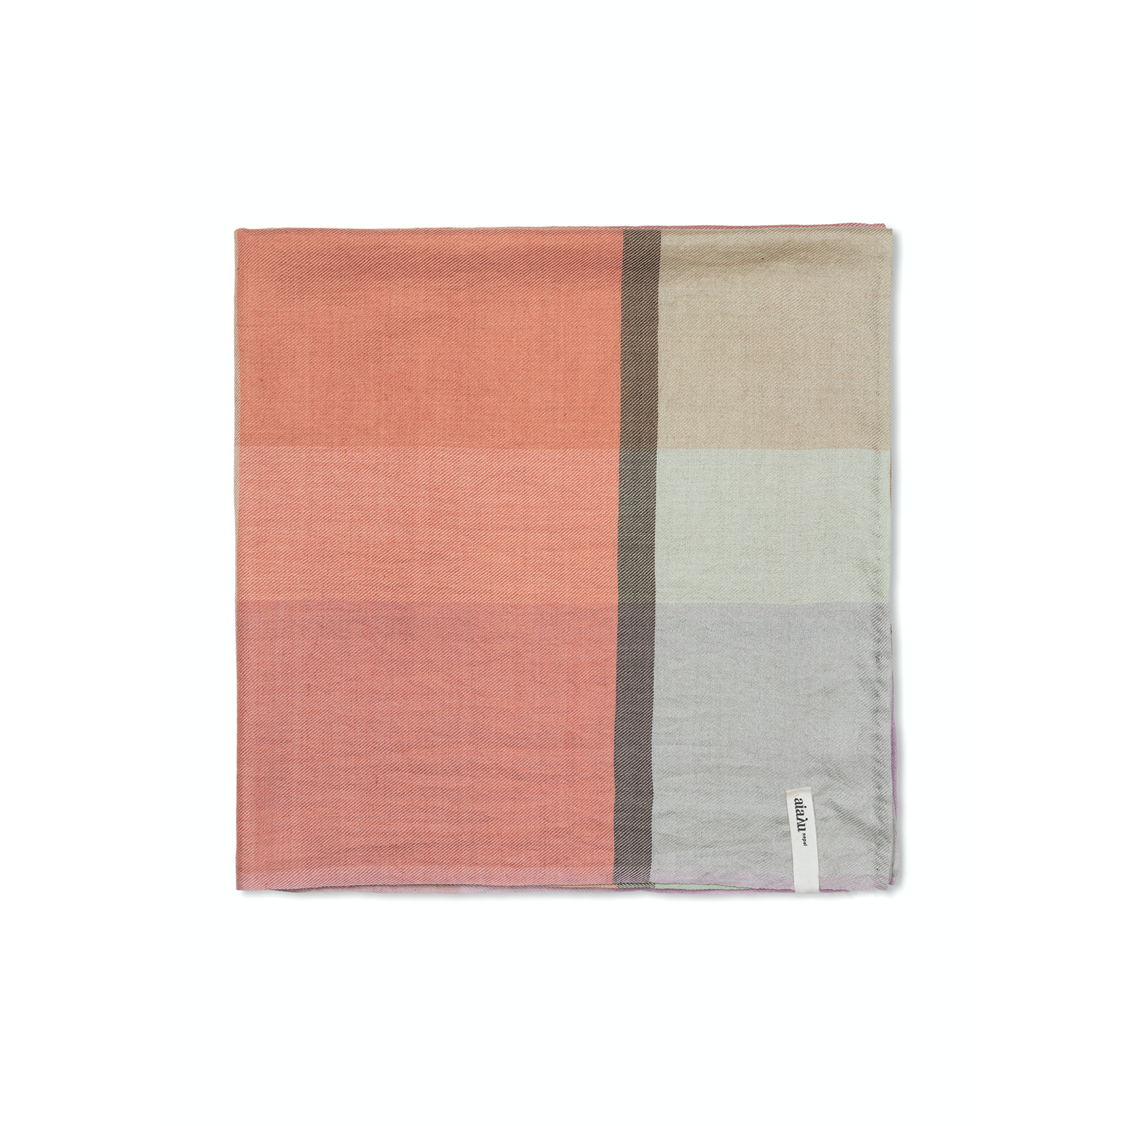 BANDIPUR SCARF MIX DANDION